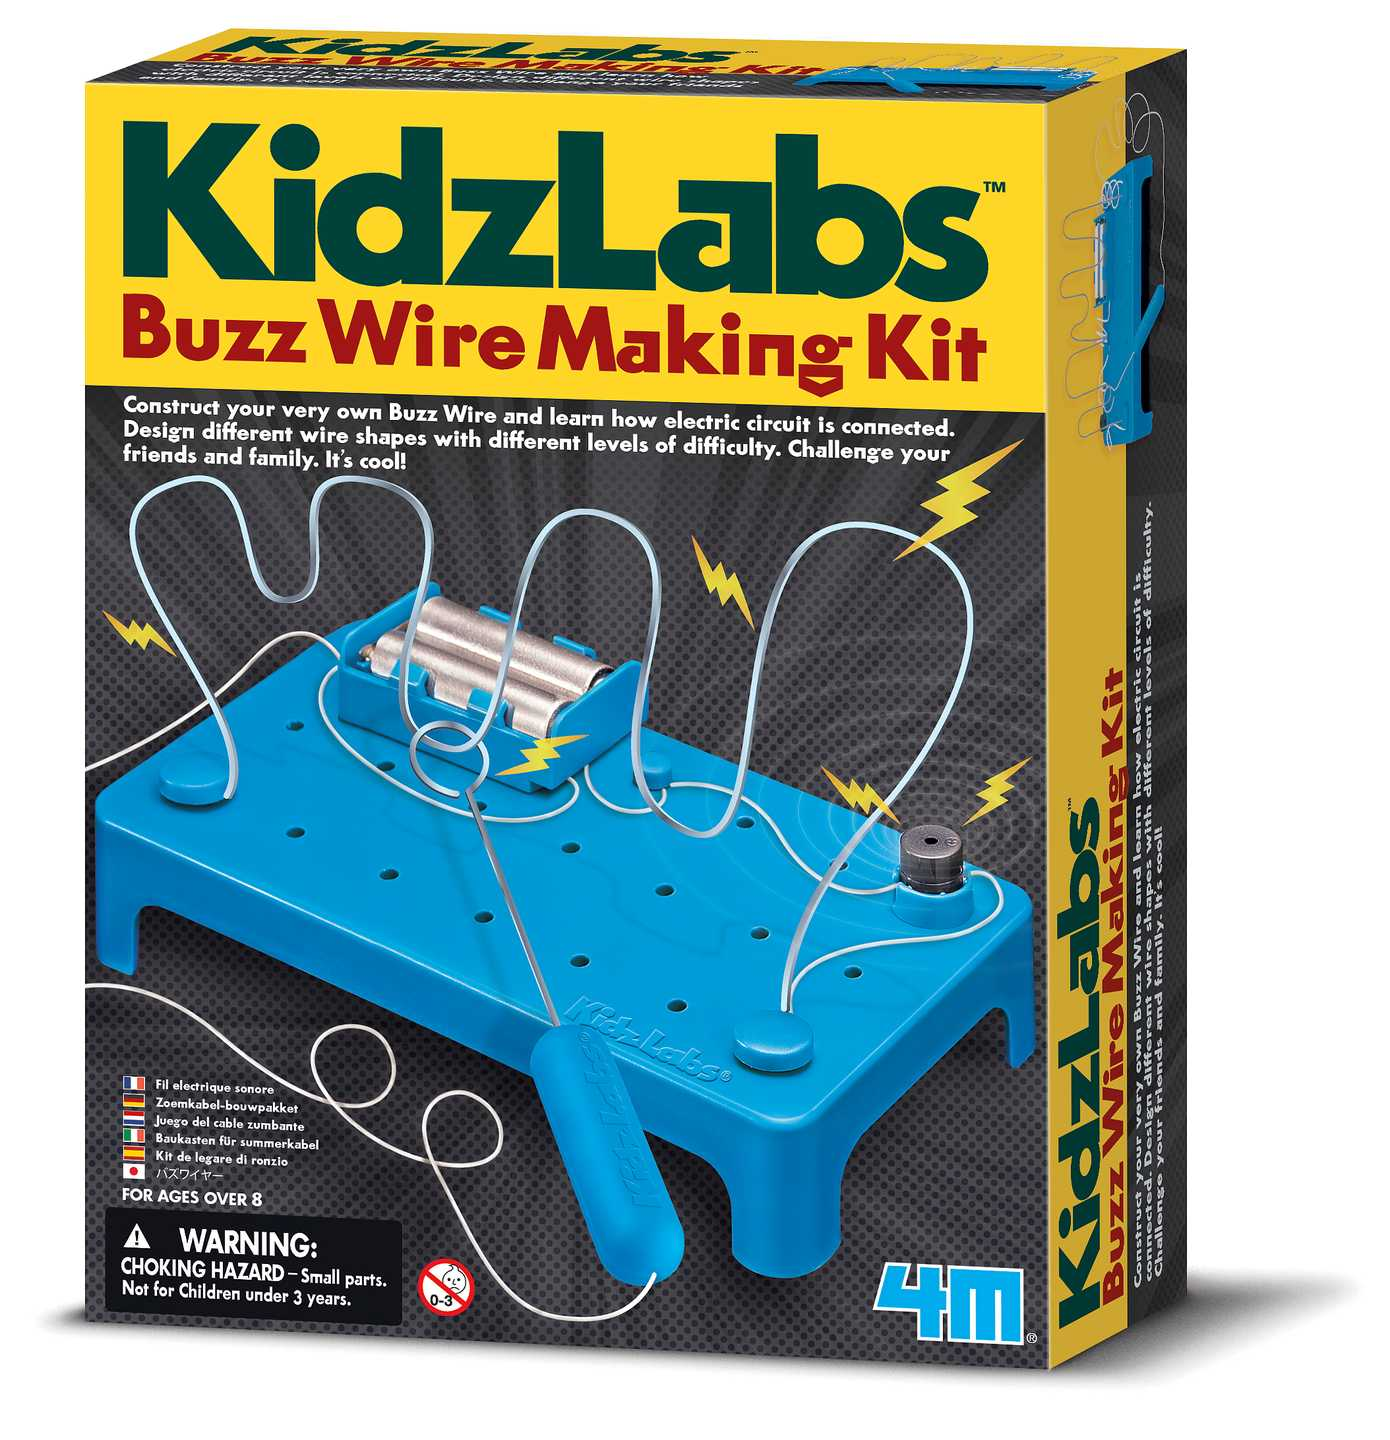 Buzz Wire Making Kit 4M KidzLabs